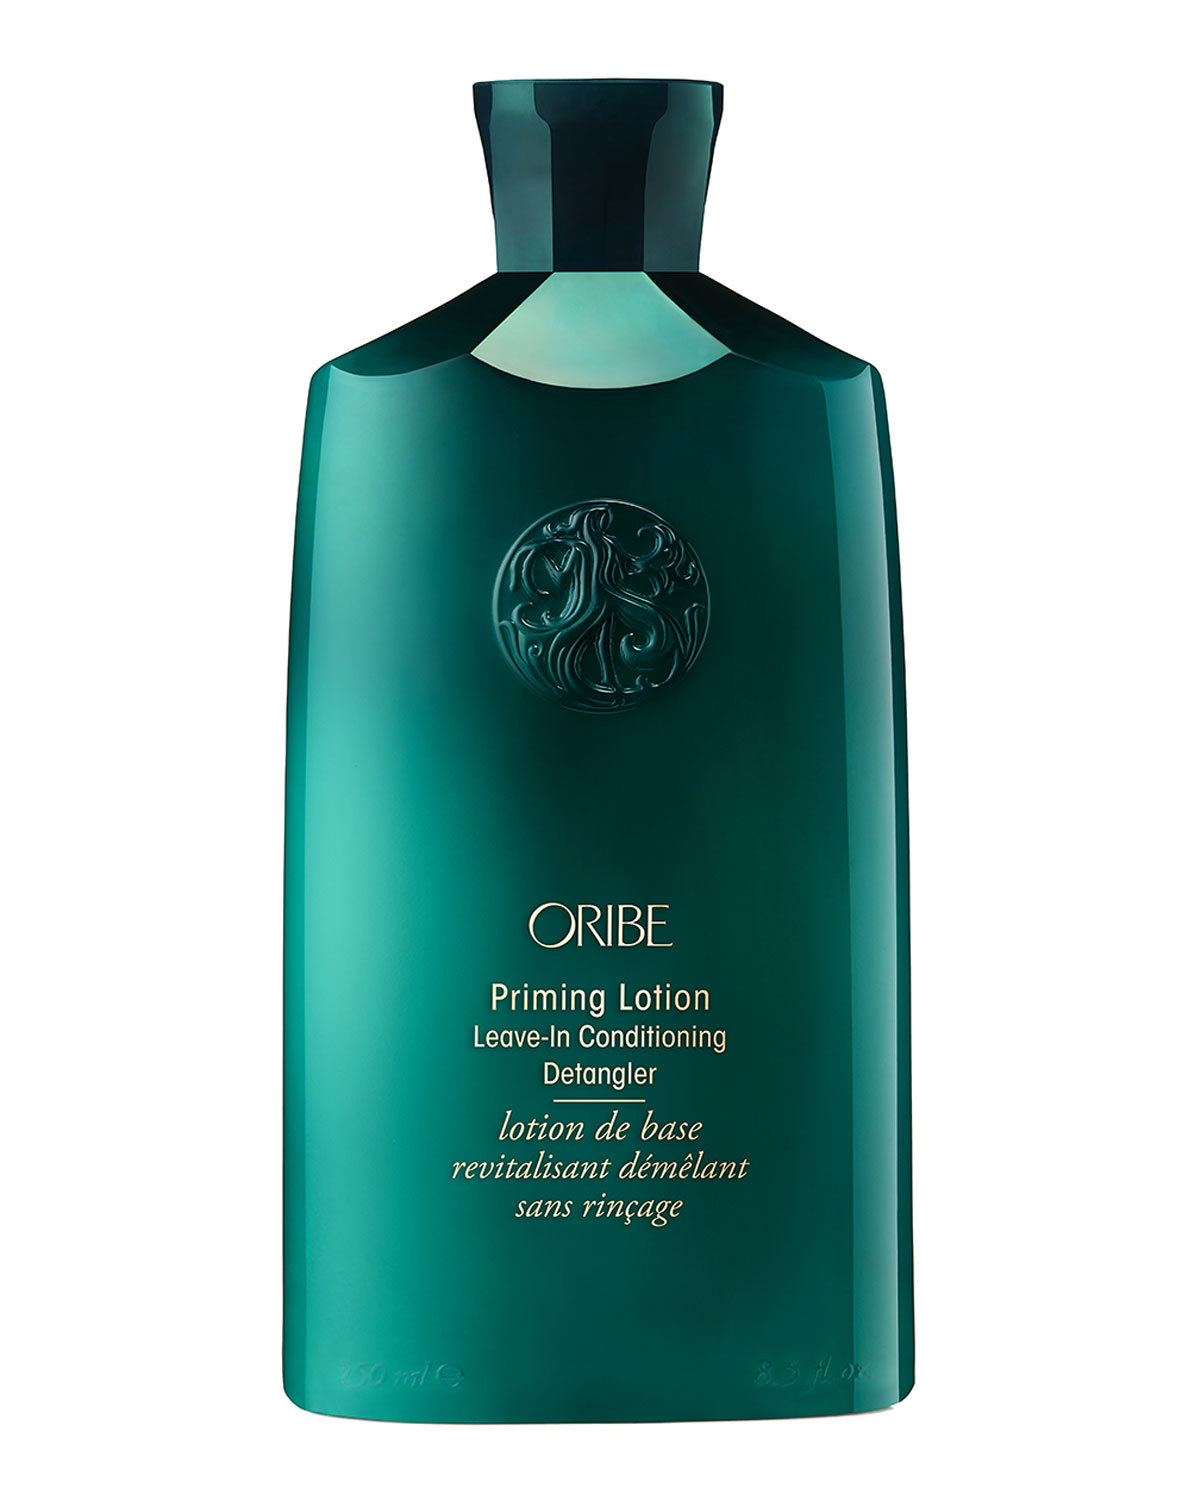 Oribe 8.5 oz. Priming Lotion Leave-In Conditioning Detangler